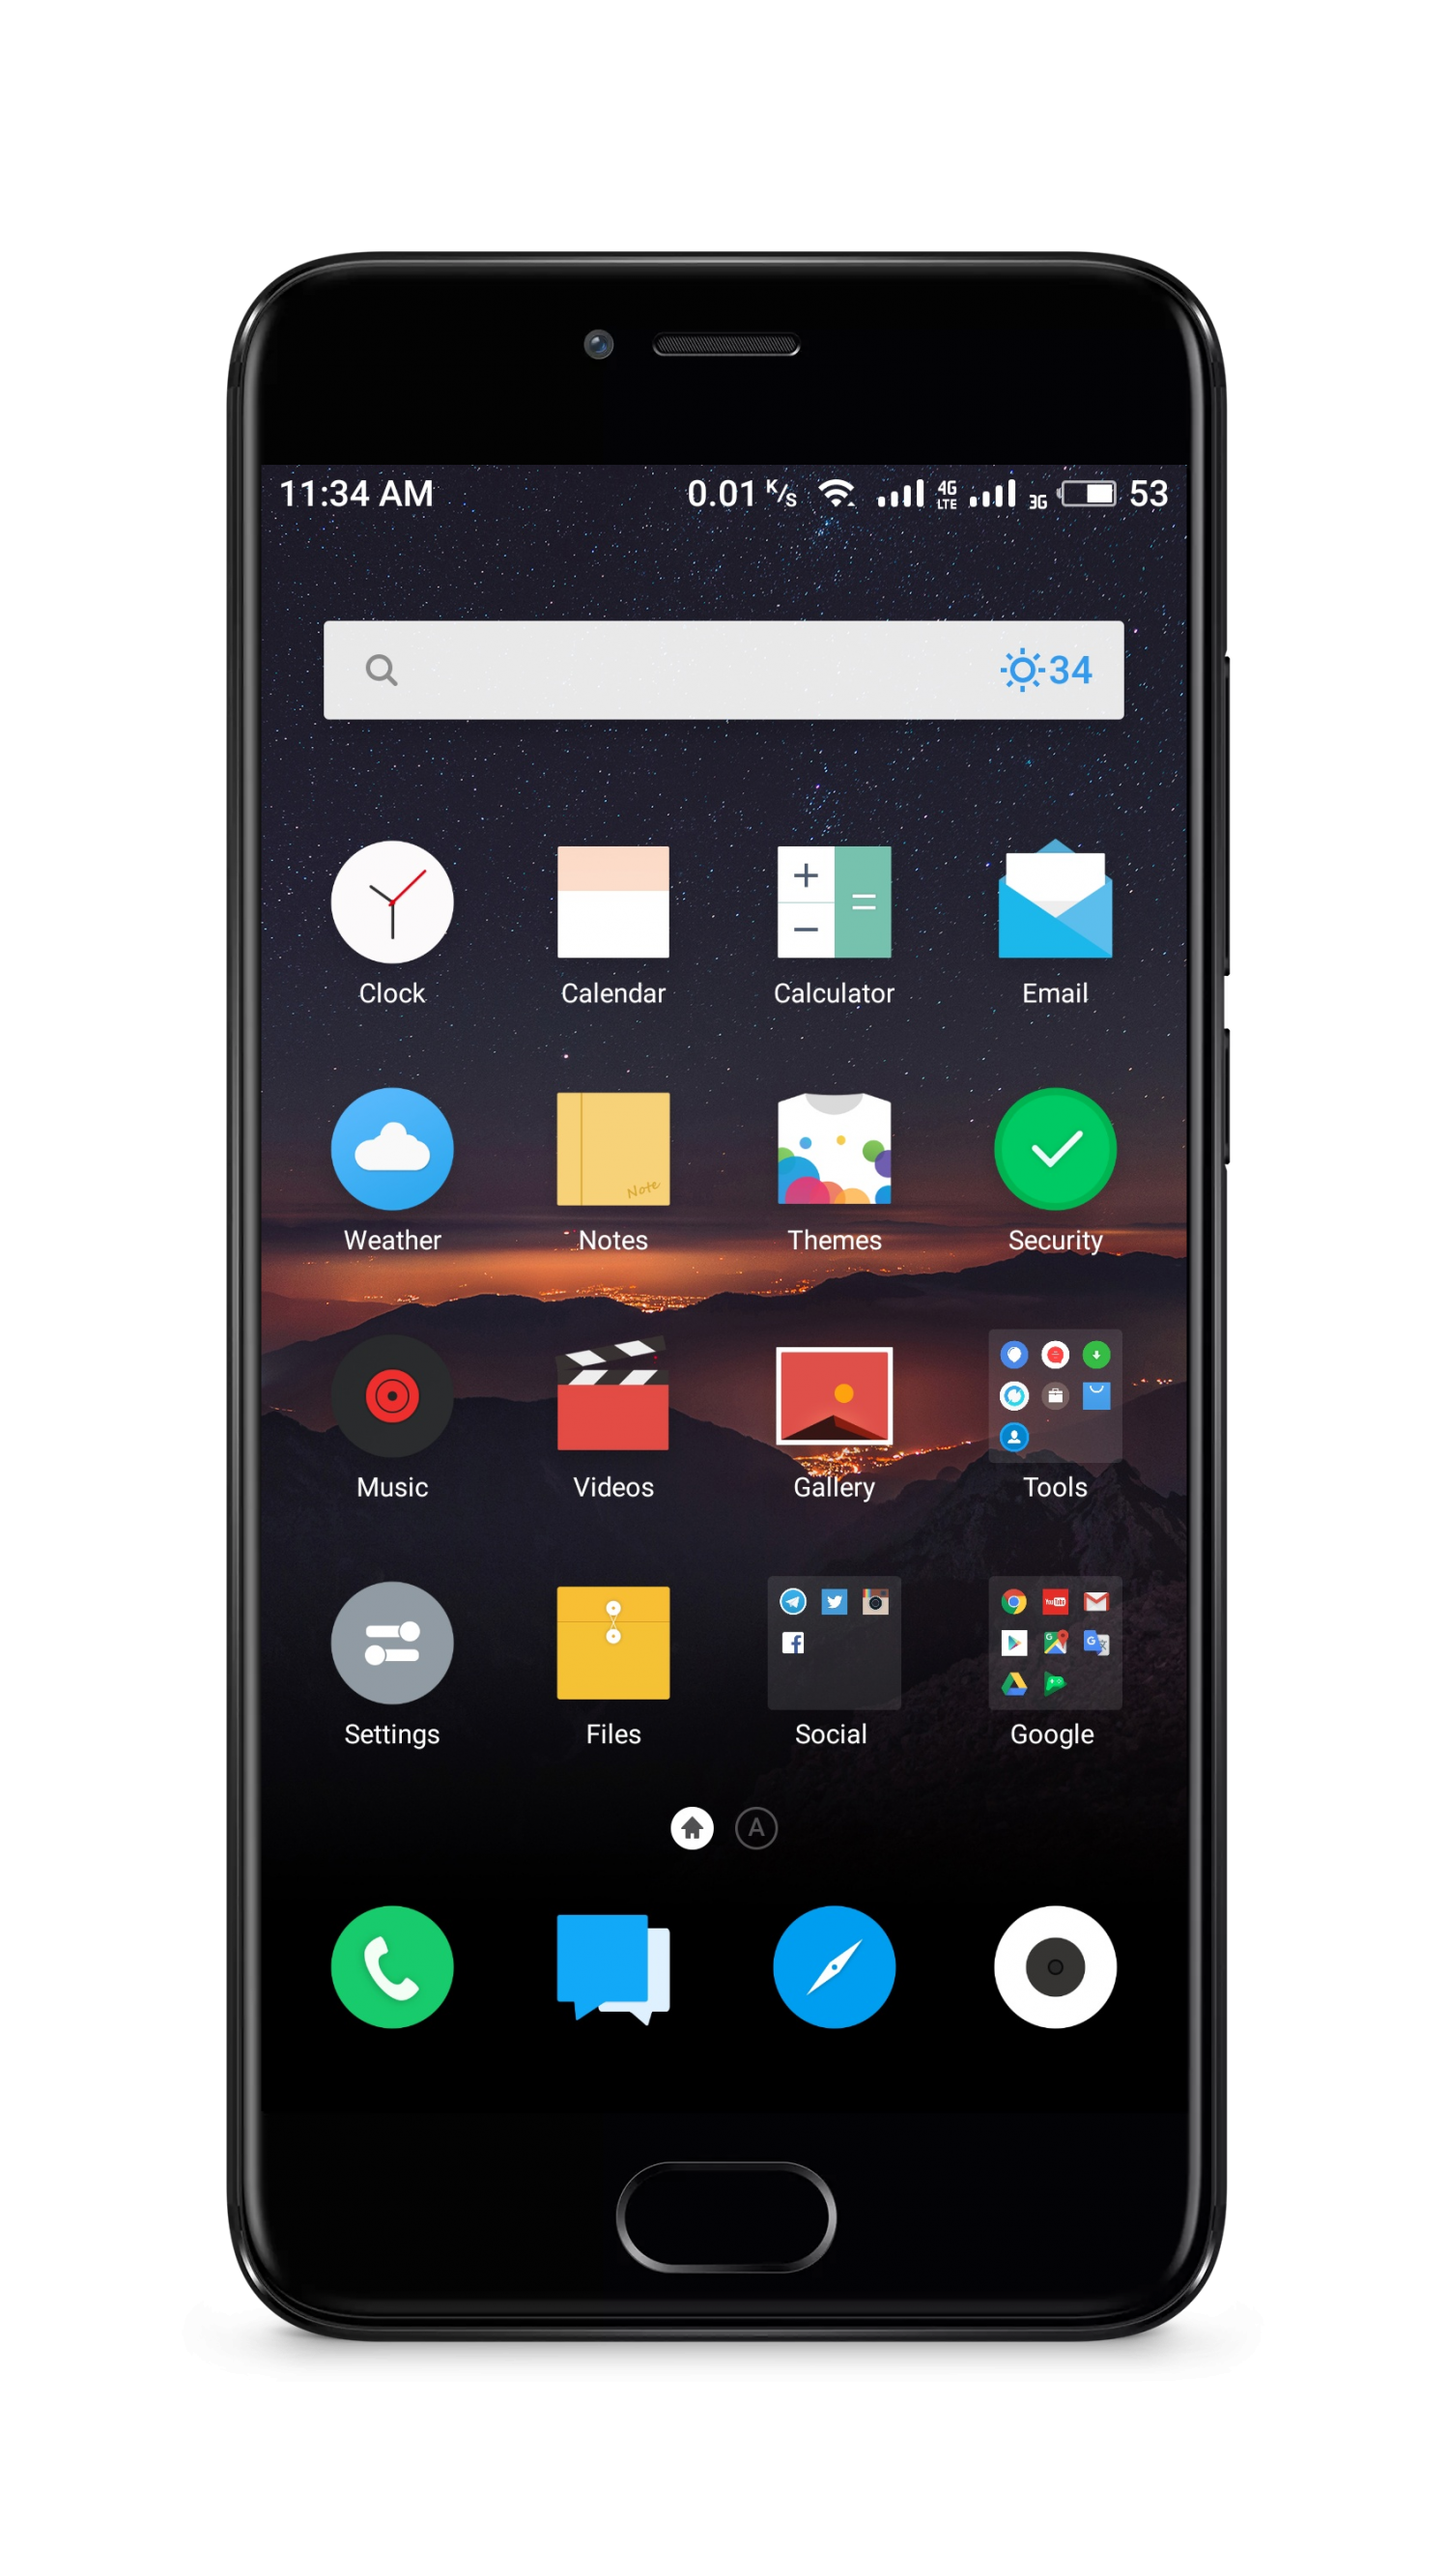 CFT-Themes] Amazing Themes Collection-Volume 1-Flyme Official Forum